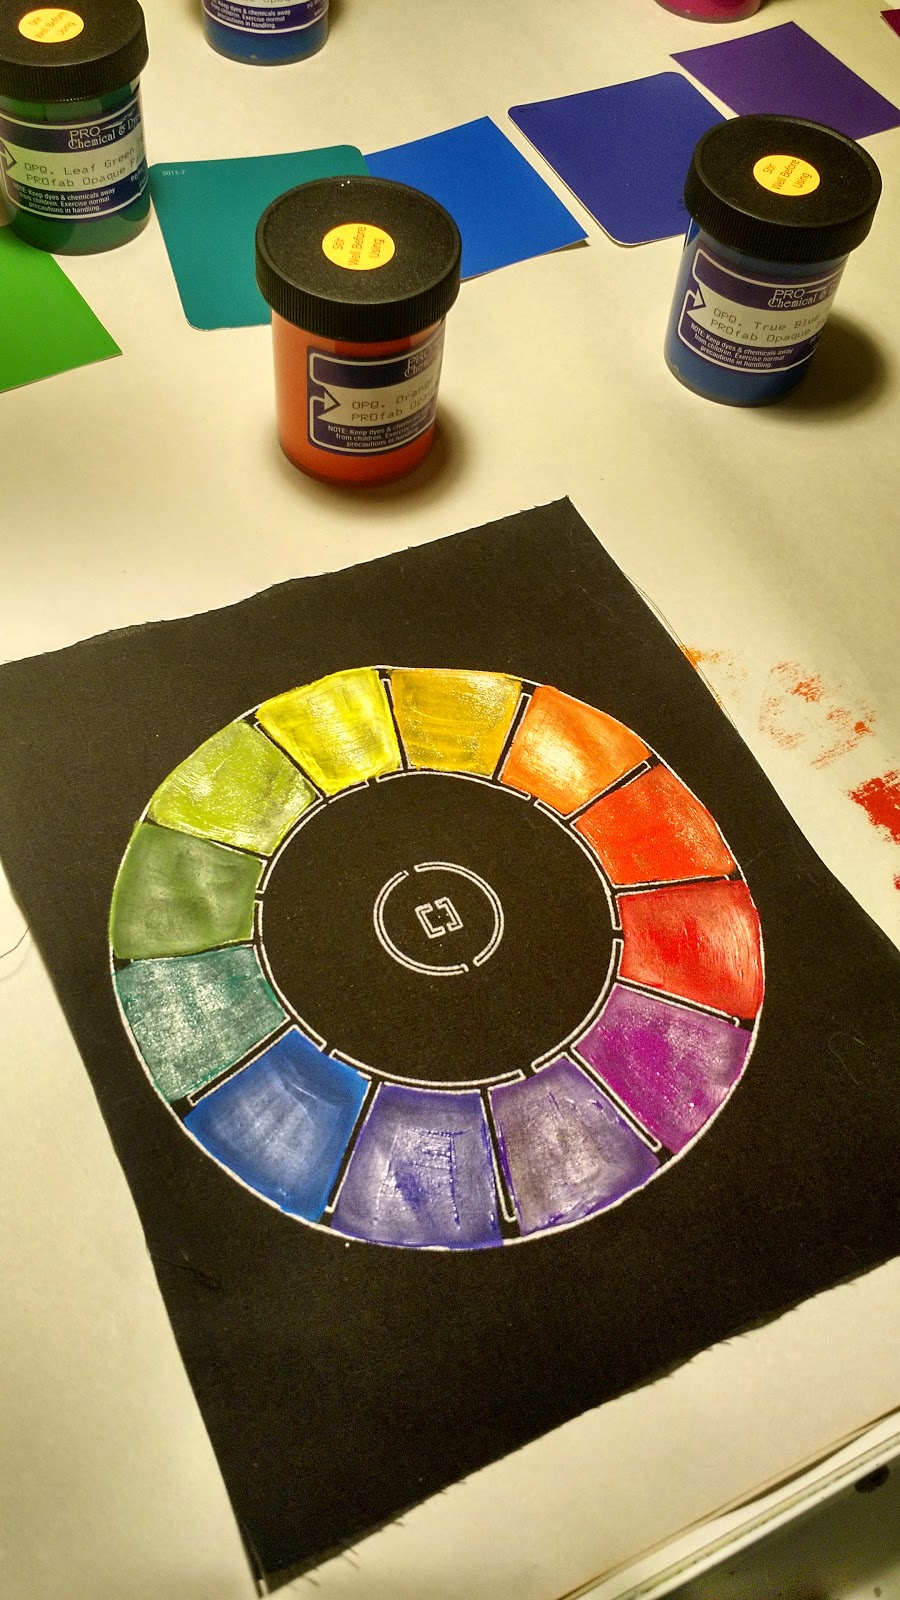 Color theory online games - I Ve Signed Up For An Online Class With Jane Dunnewold On Color For Textile Artists This Week S Homework Was To Work On Some Color Wheels On Both Paper And